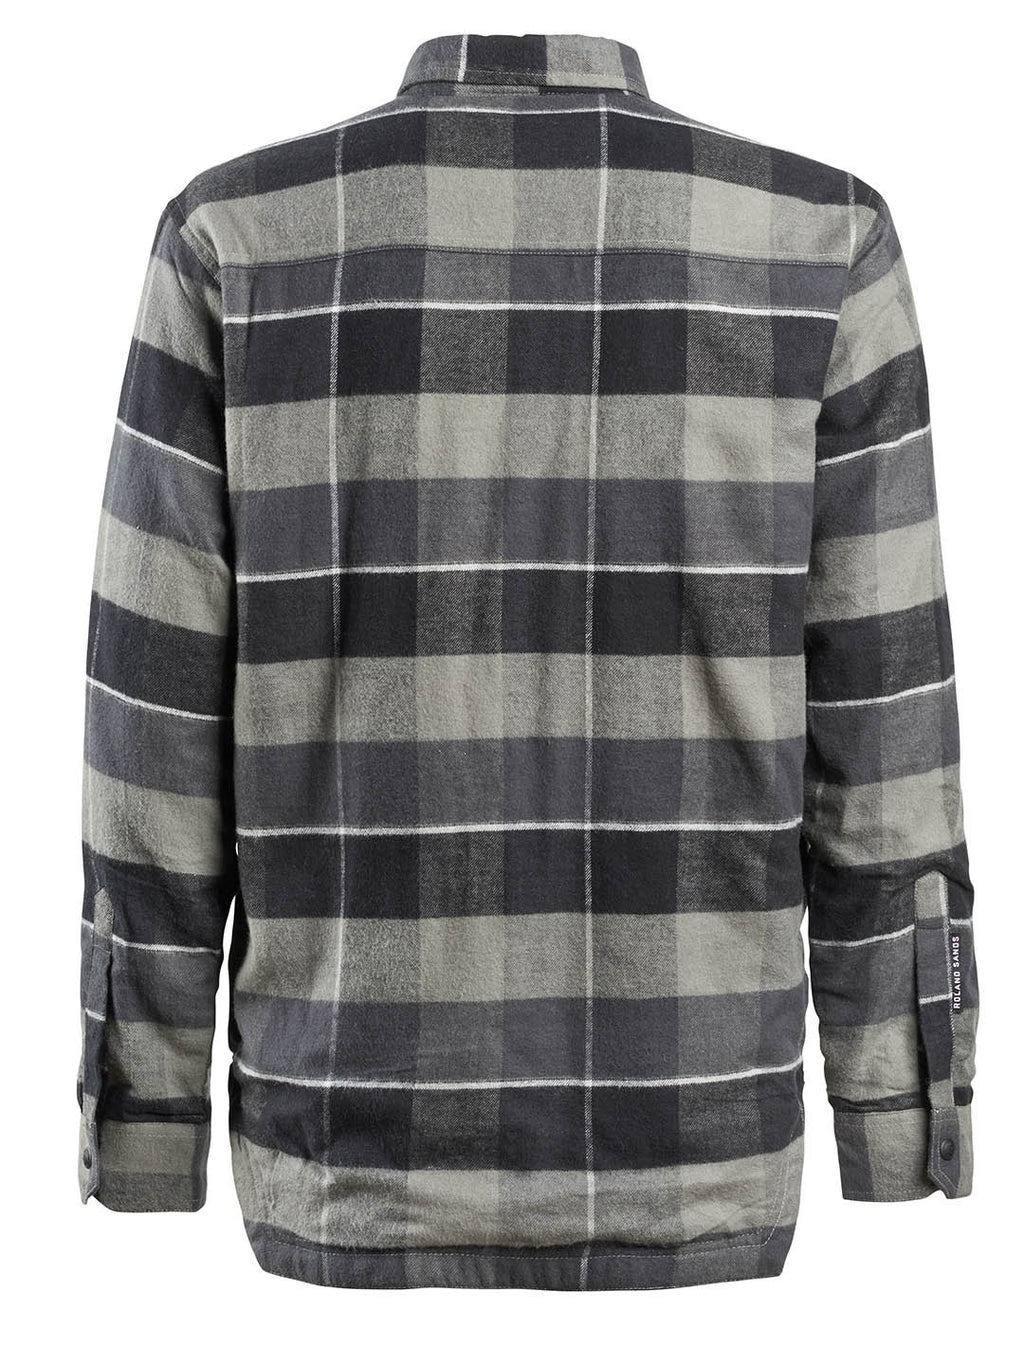 RSD (Roland Sands Design) Gorman Plaid Shirt - Black / Grey